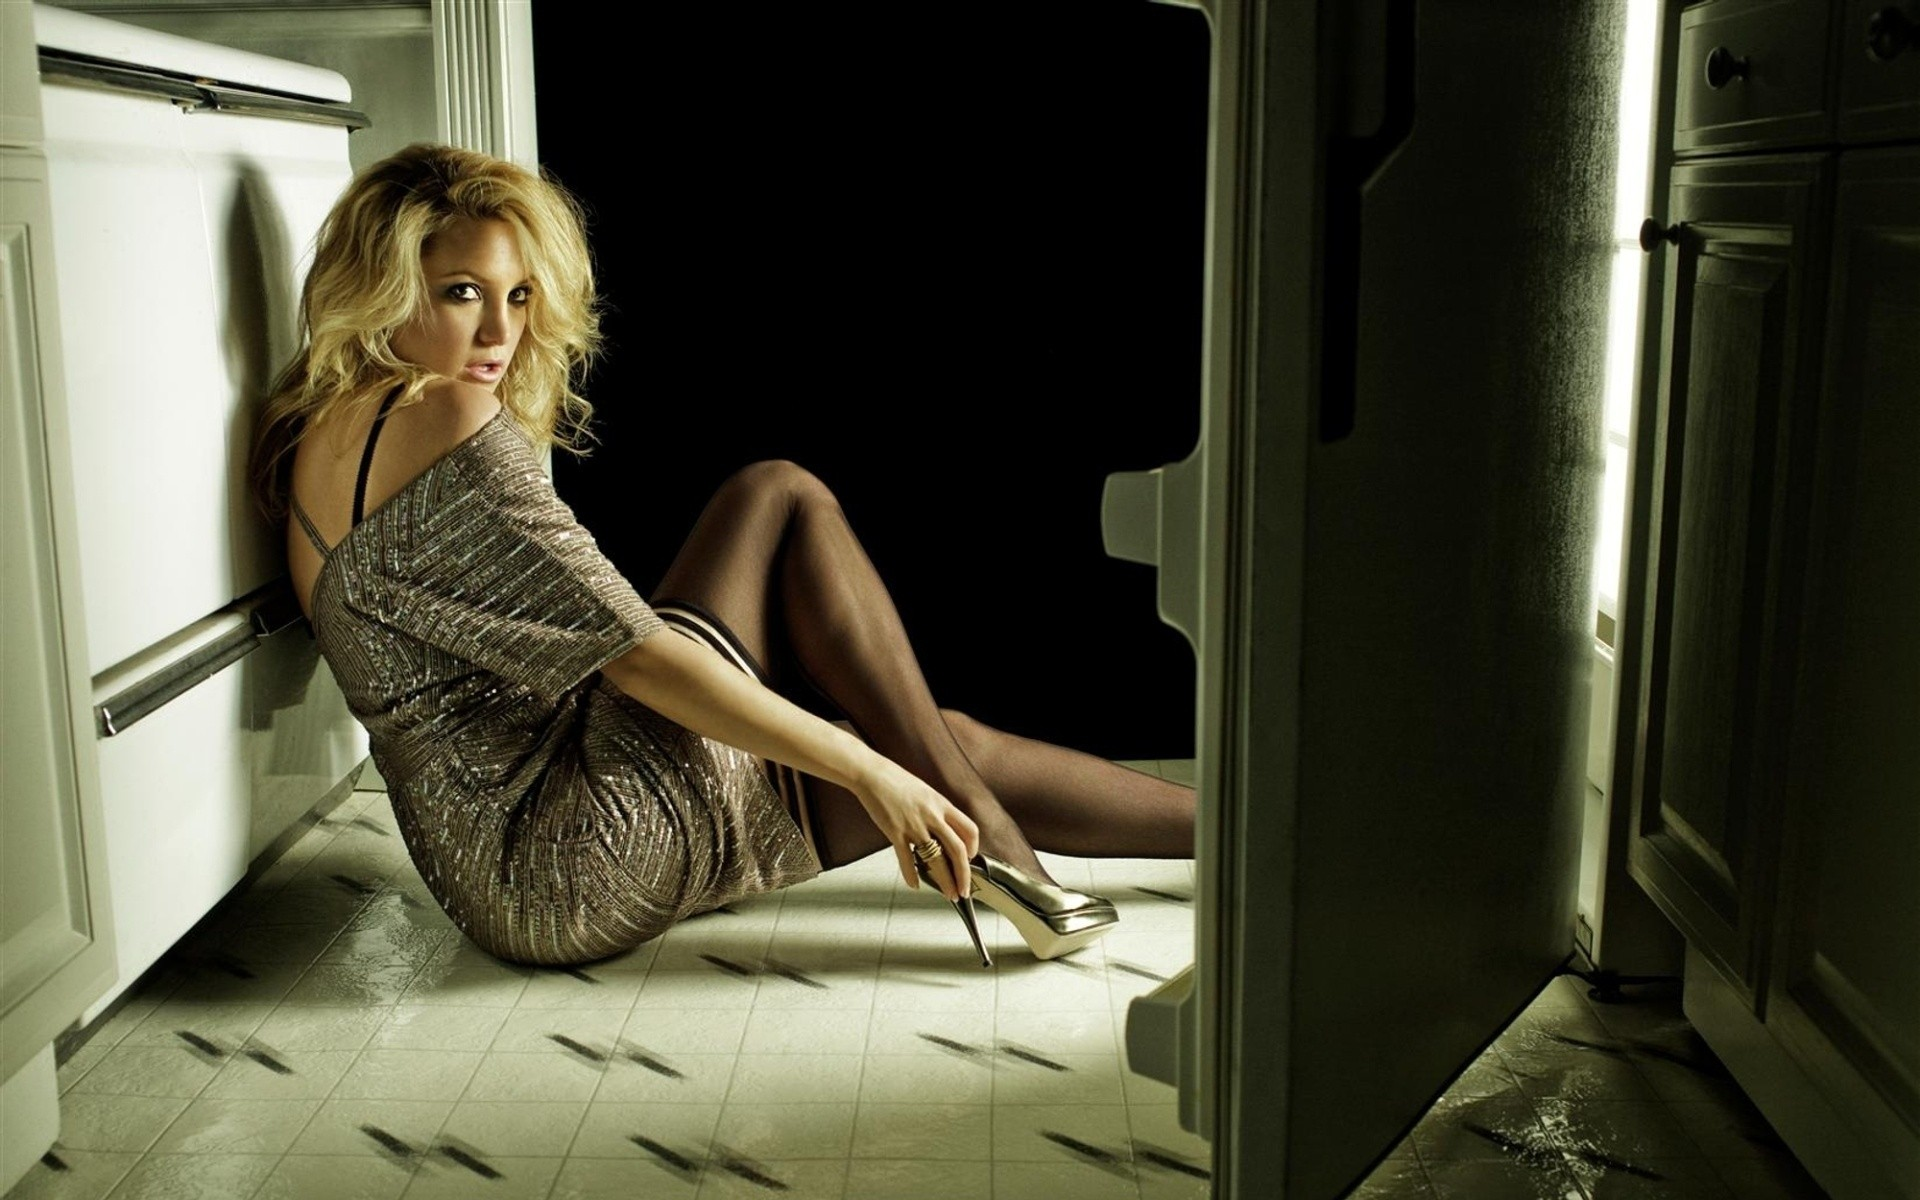 Kate Hudson Hot & Sexy Images, Topless Photos